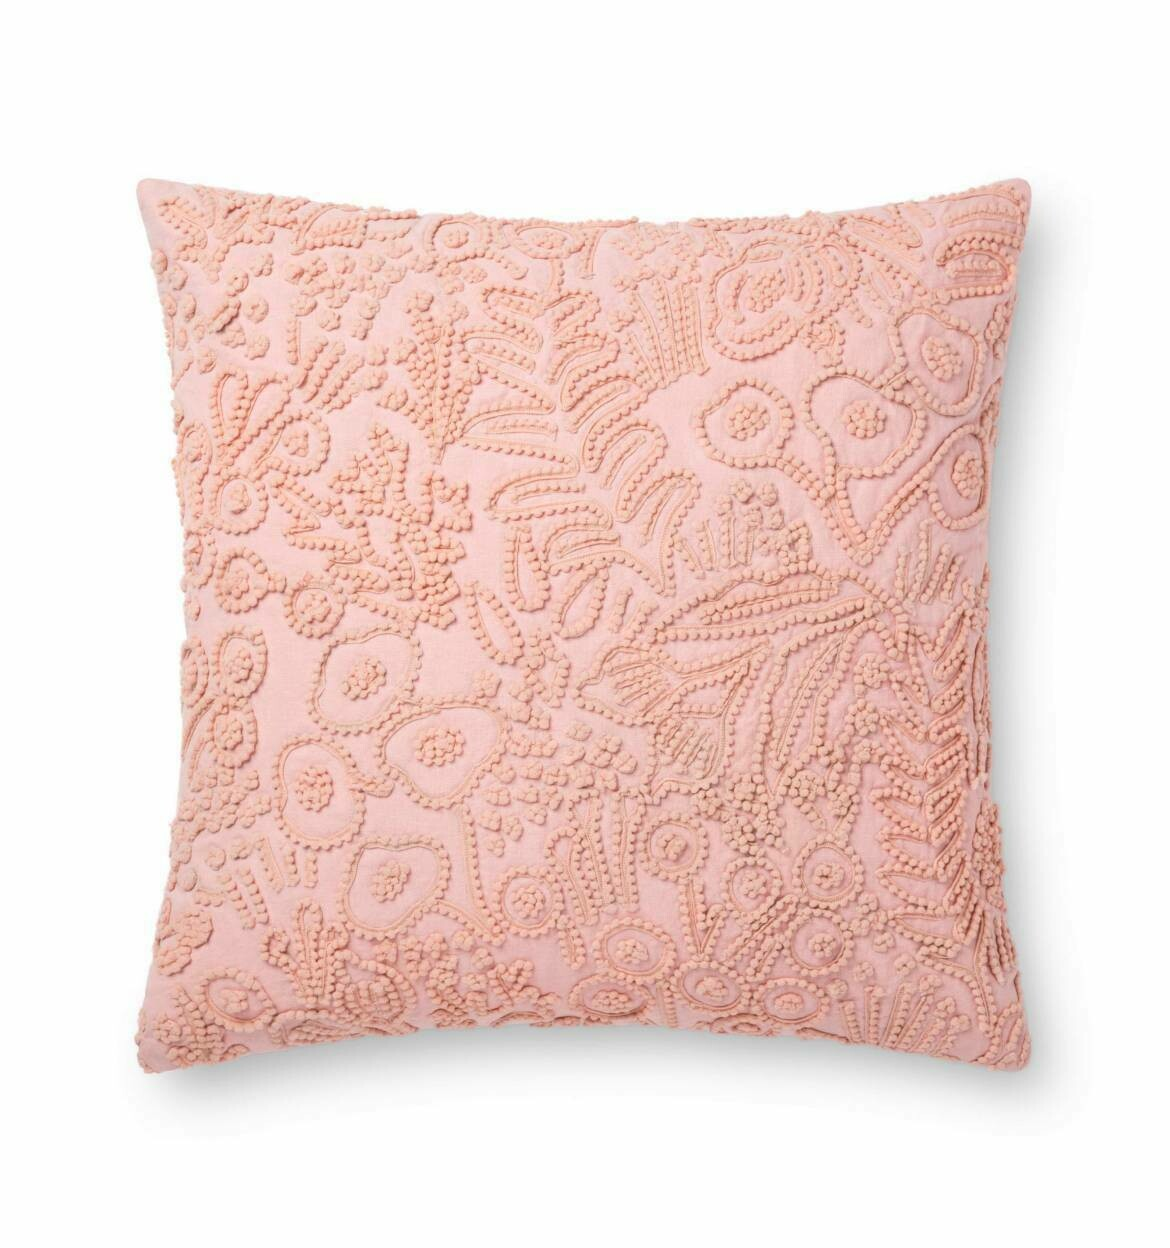 Rifle Paper Embroidered Tapestry Pillows